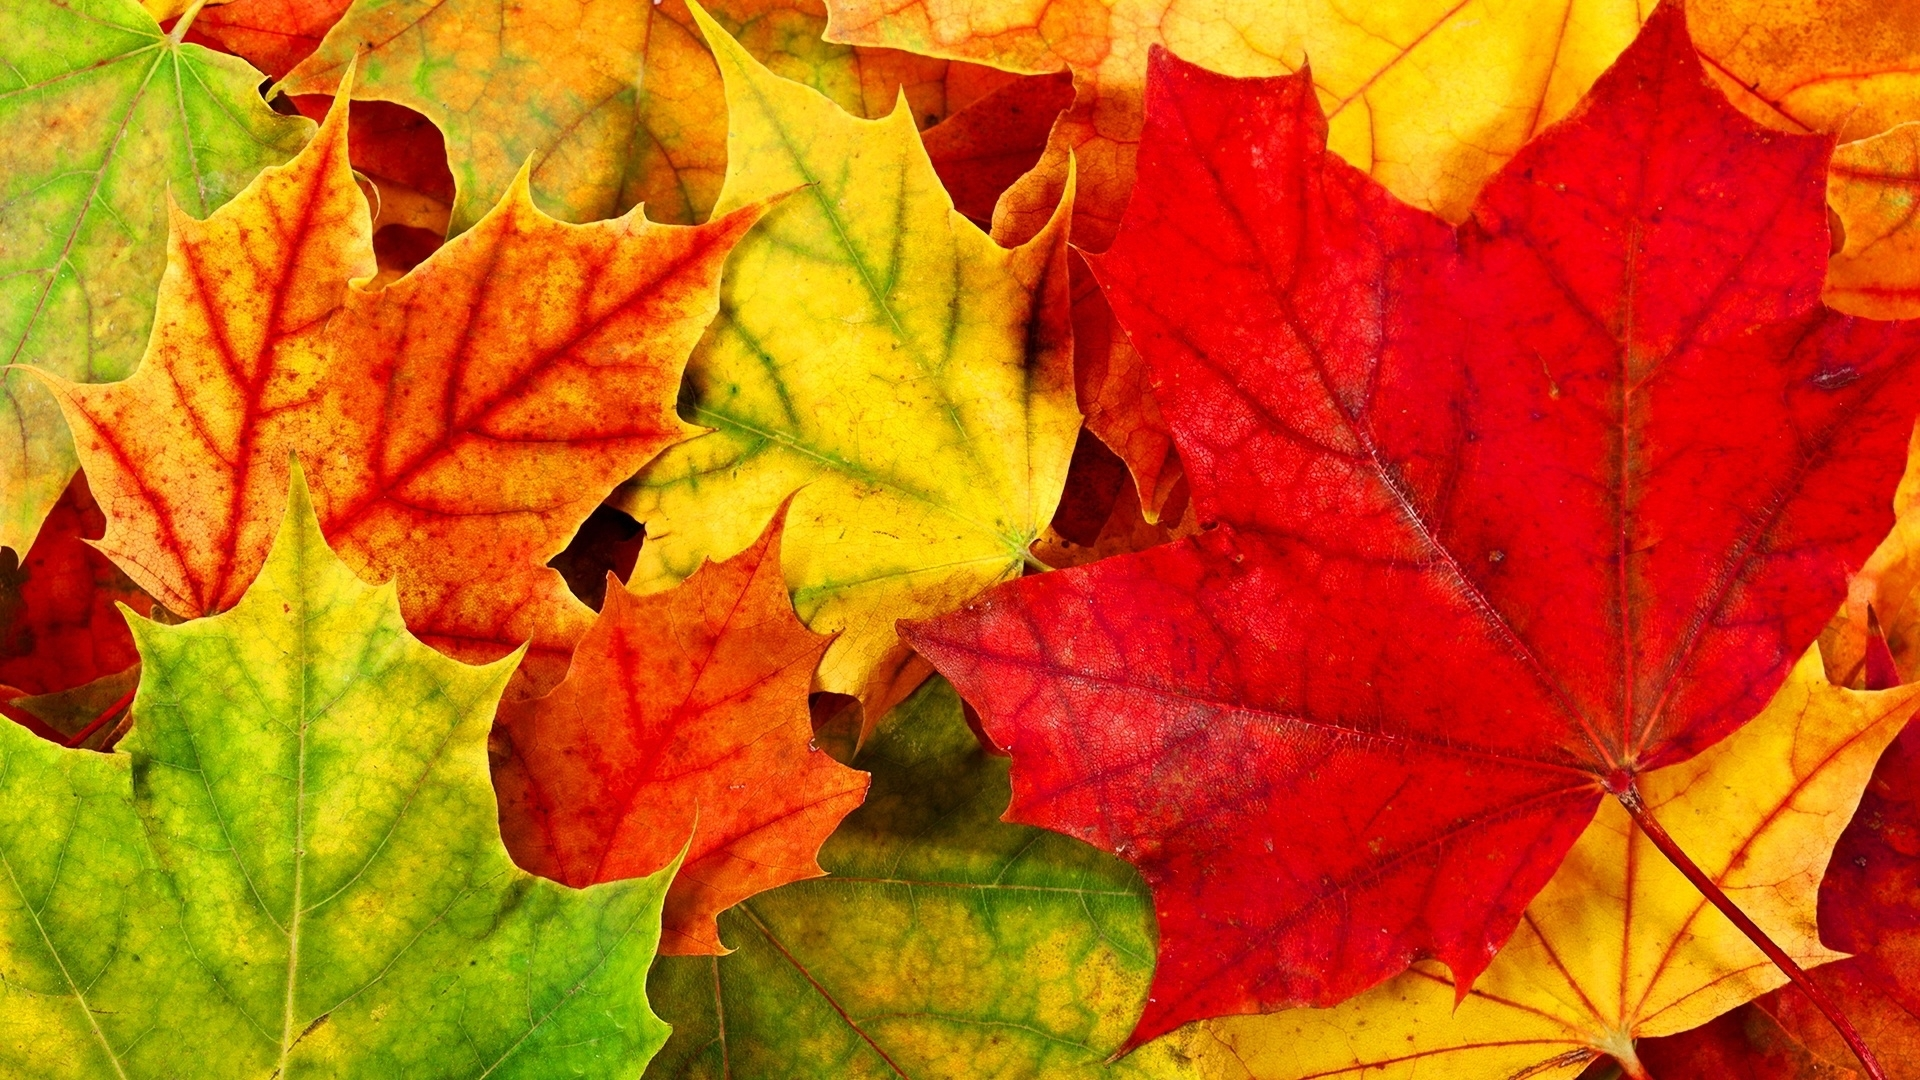 10 Top Autumn Leaves Wallpaper Widescreen FULL HD 1080p For PC Background